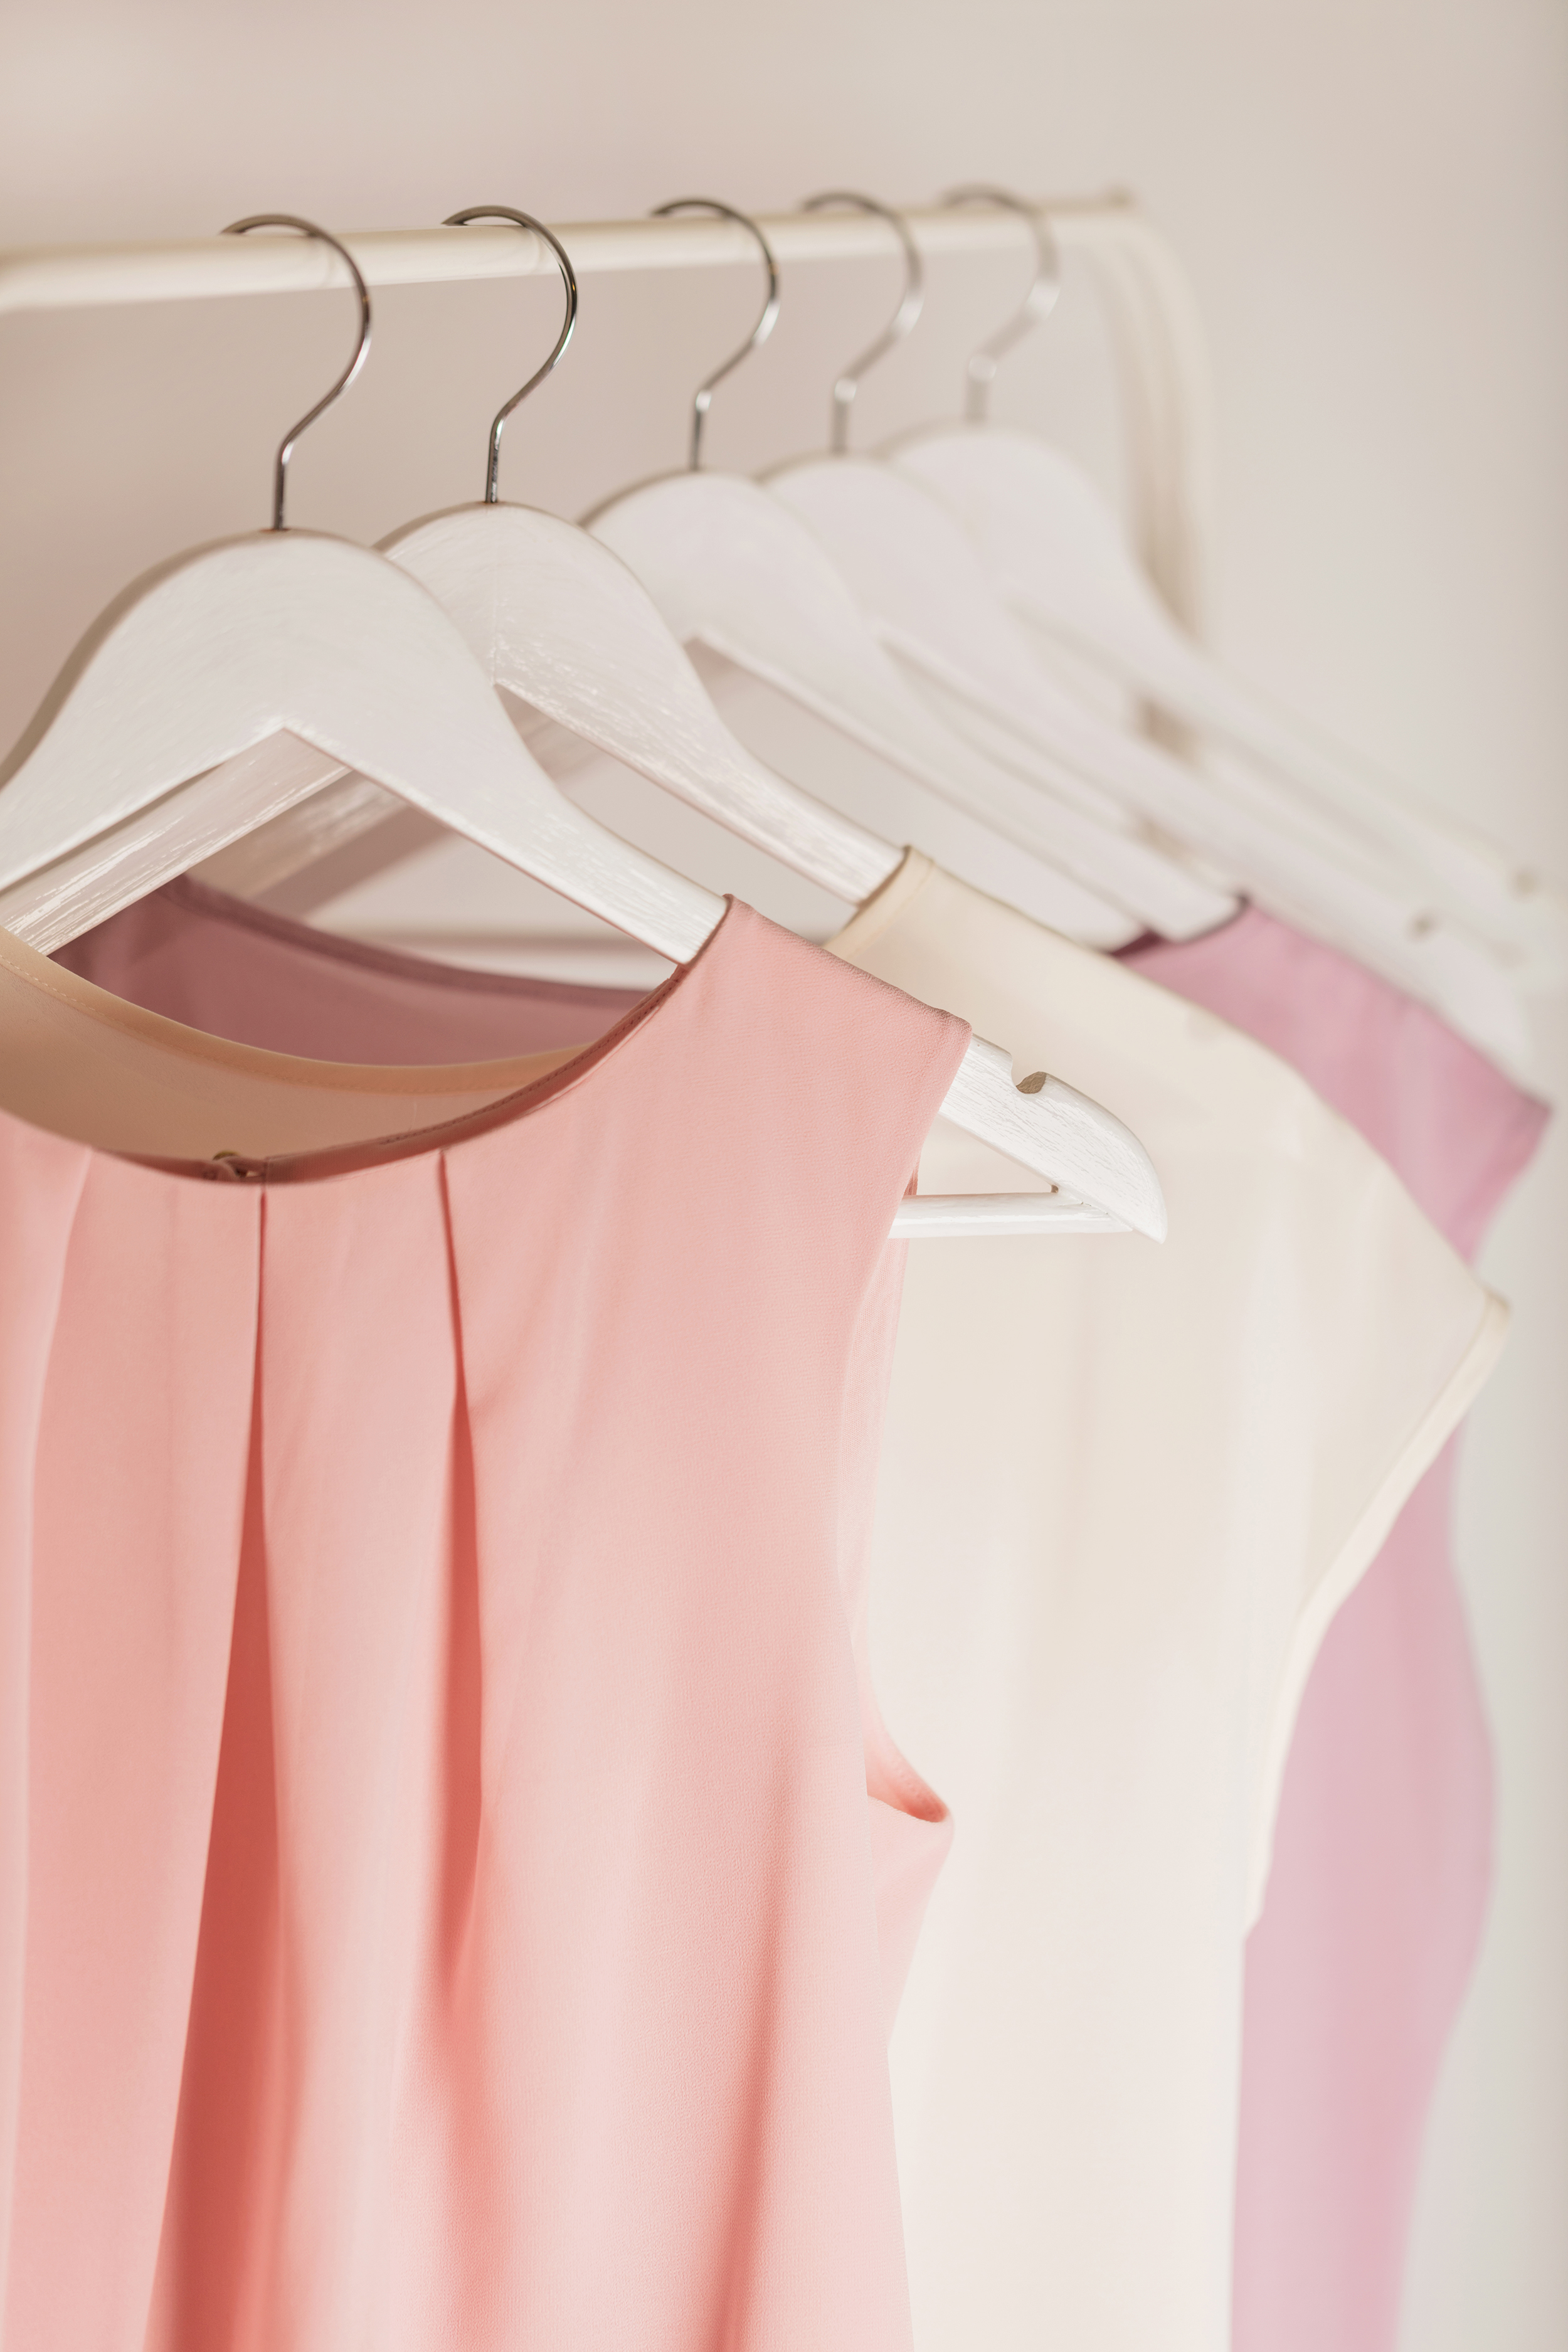 Plus-Size Shopping Tips for Mother of the Bride, Dresses Hanging on Rack